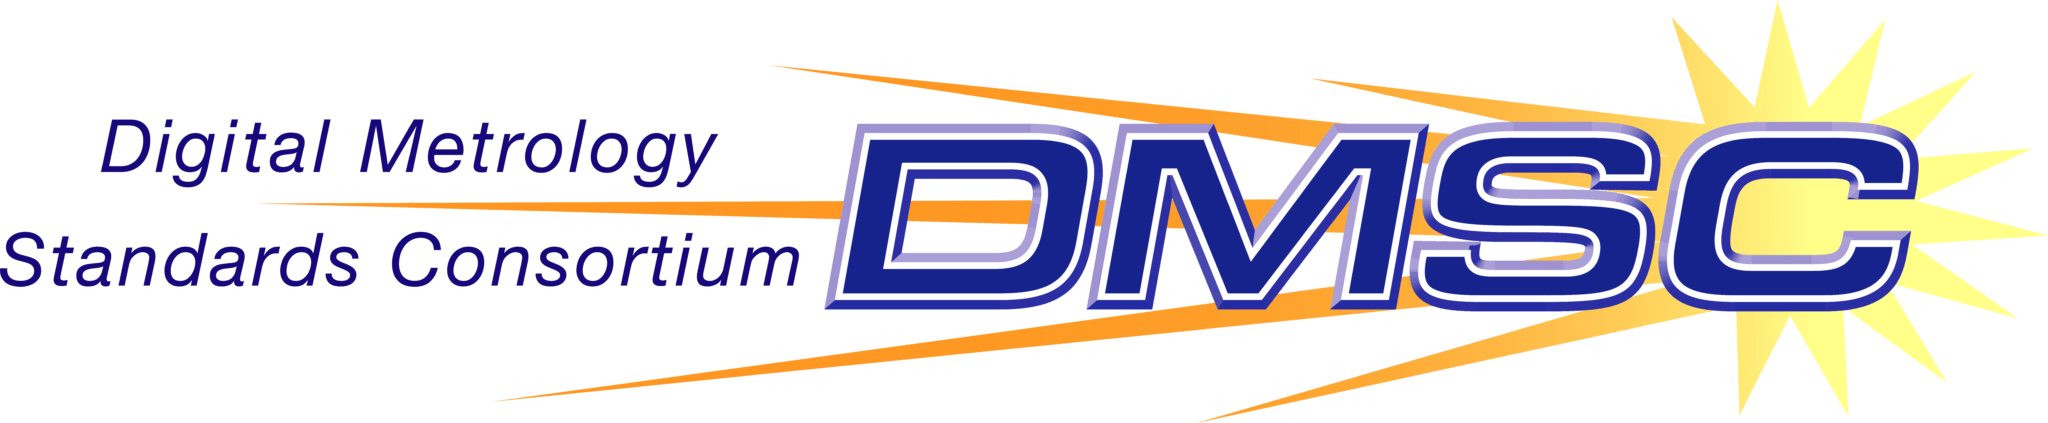 Dimensional Metrology Standards Consortium (DMSC)